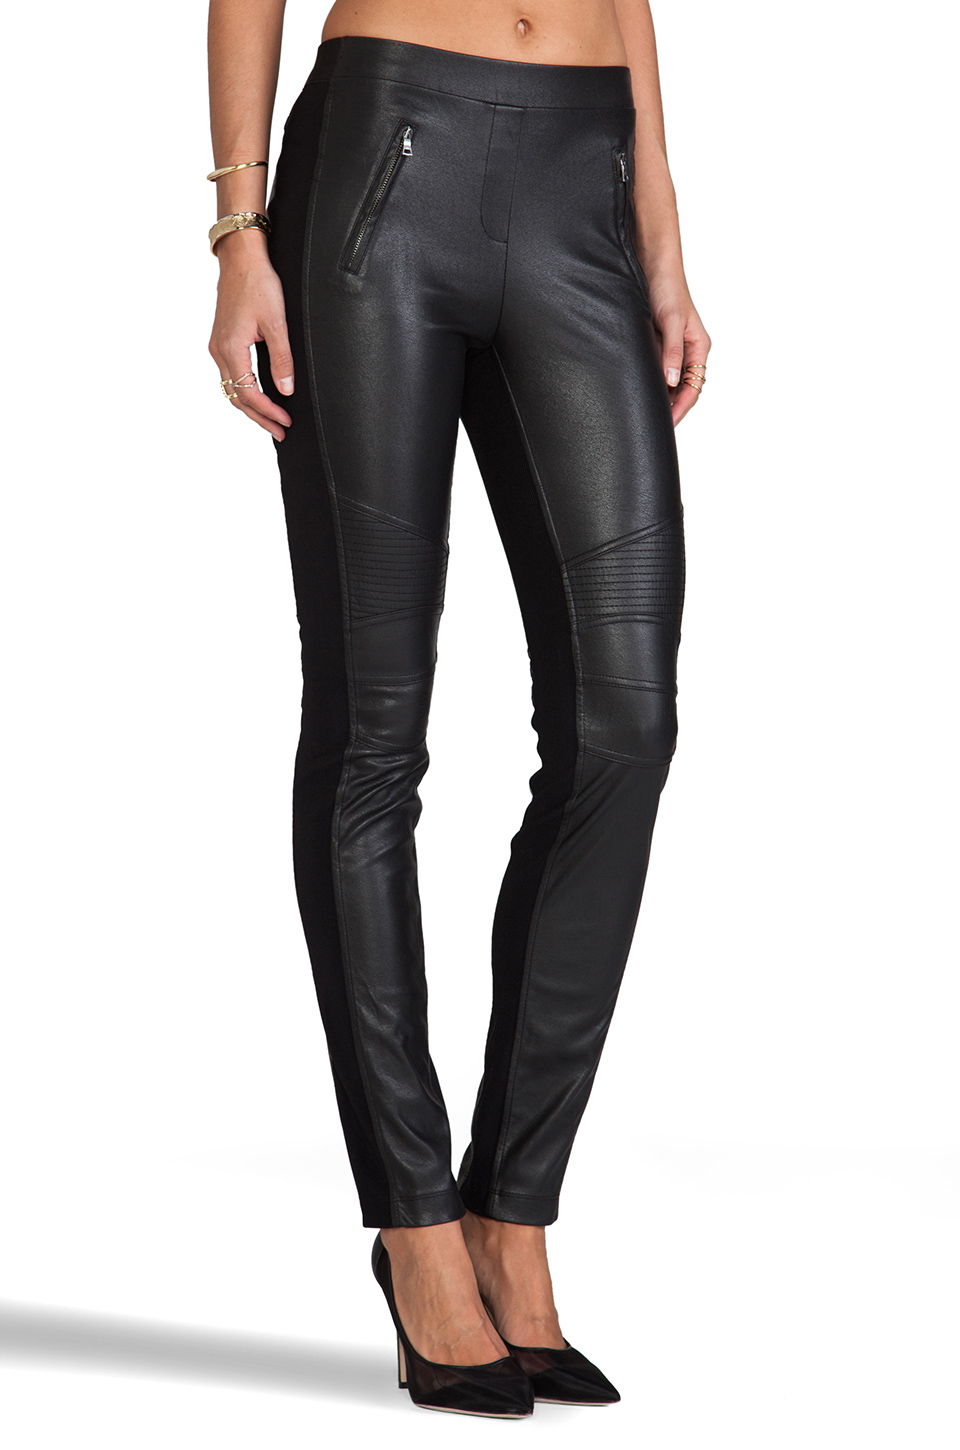 BCBGMAXAZRIA Pants in Black | REVOLVE